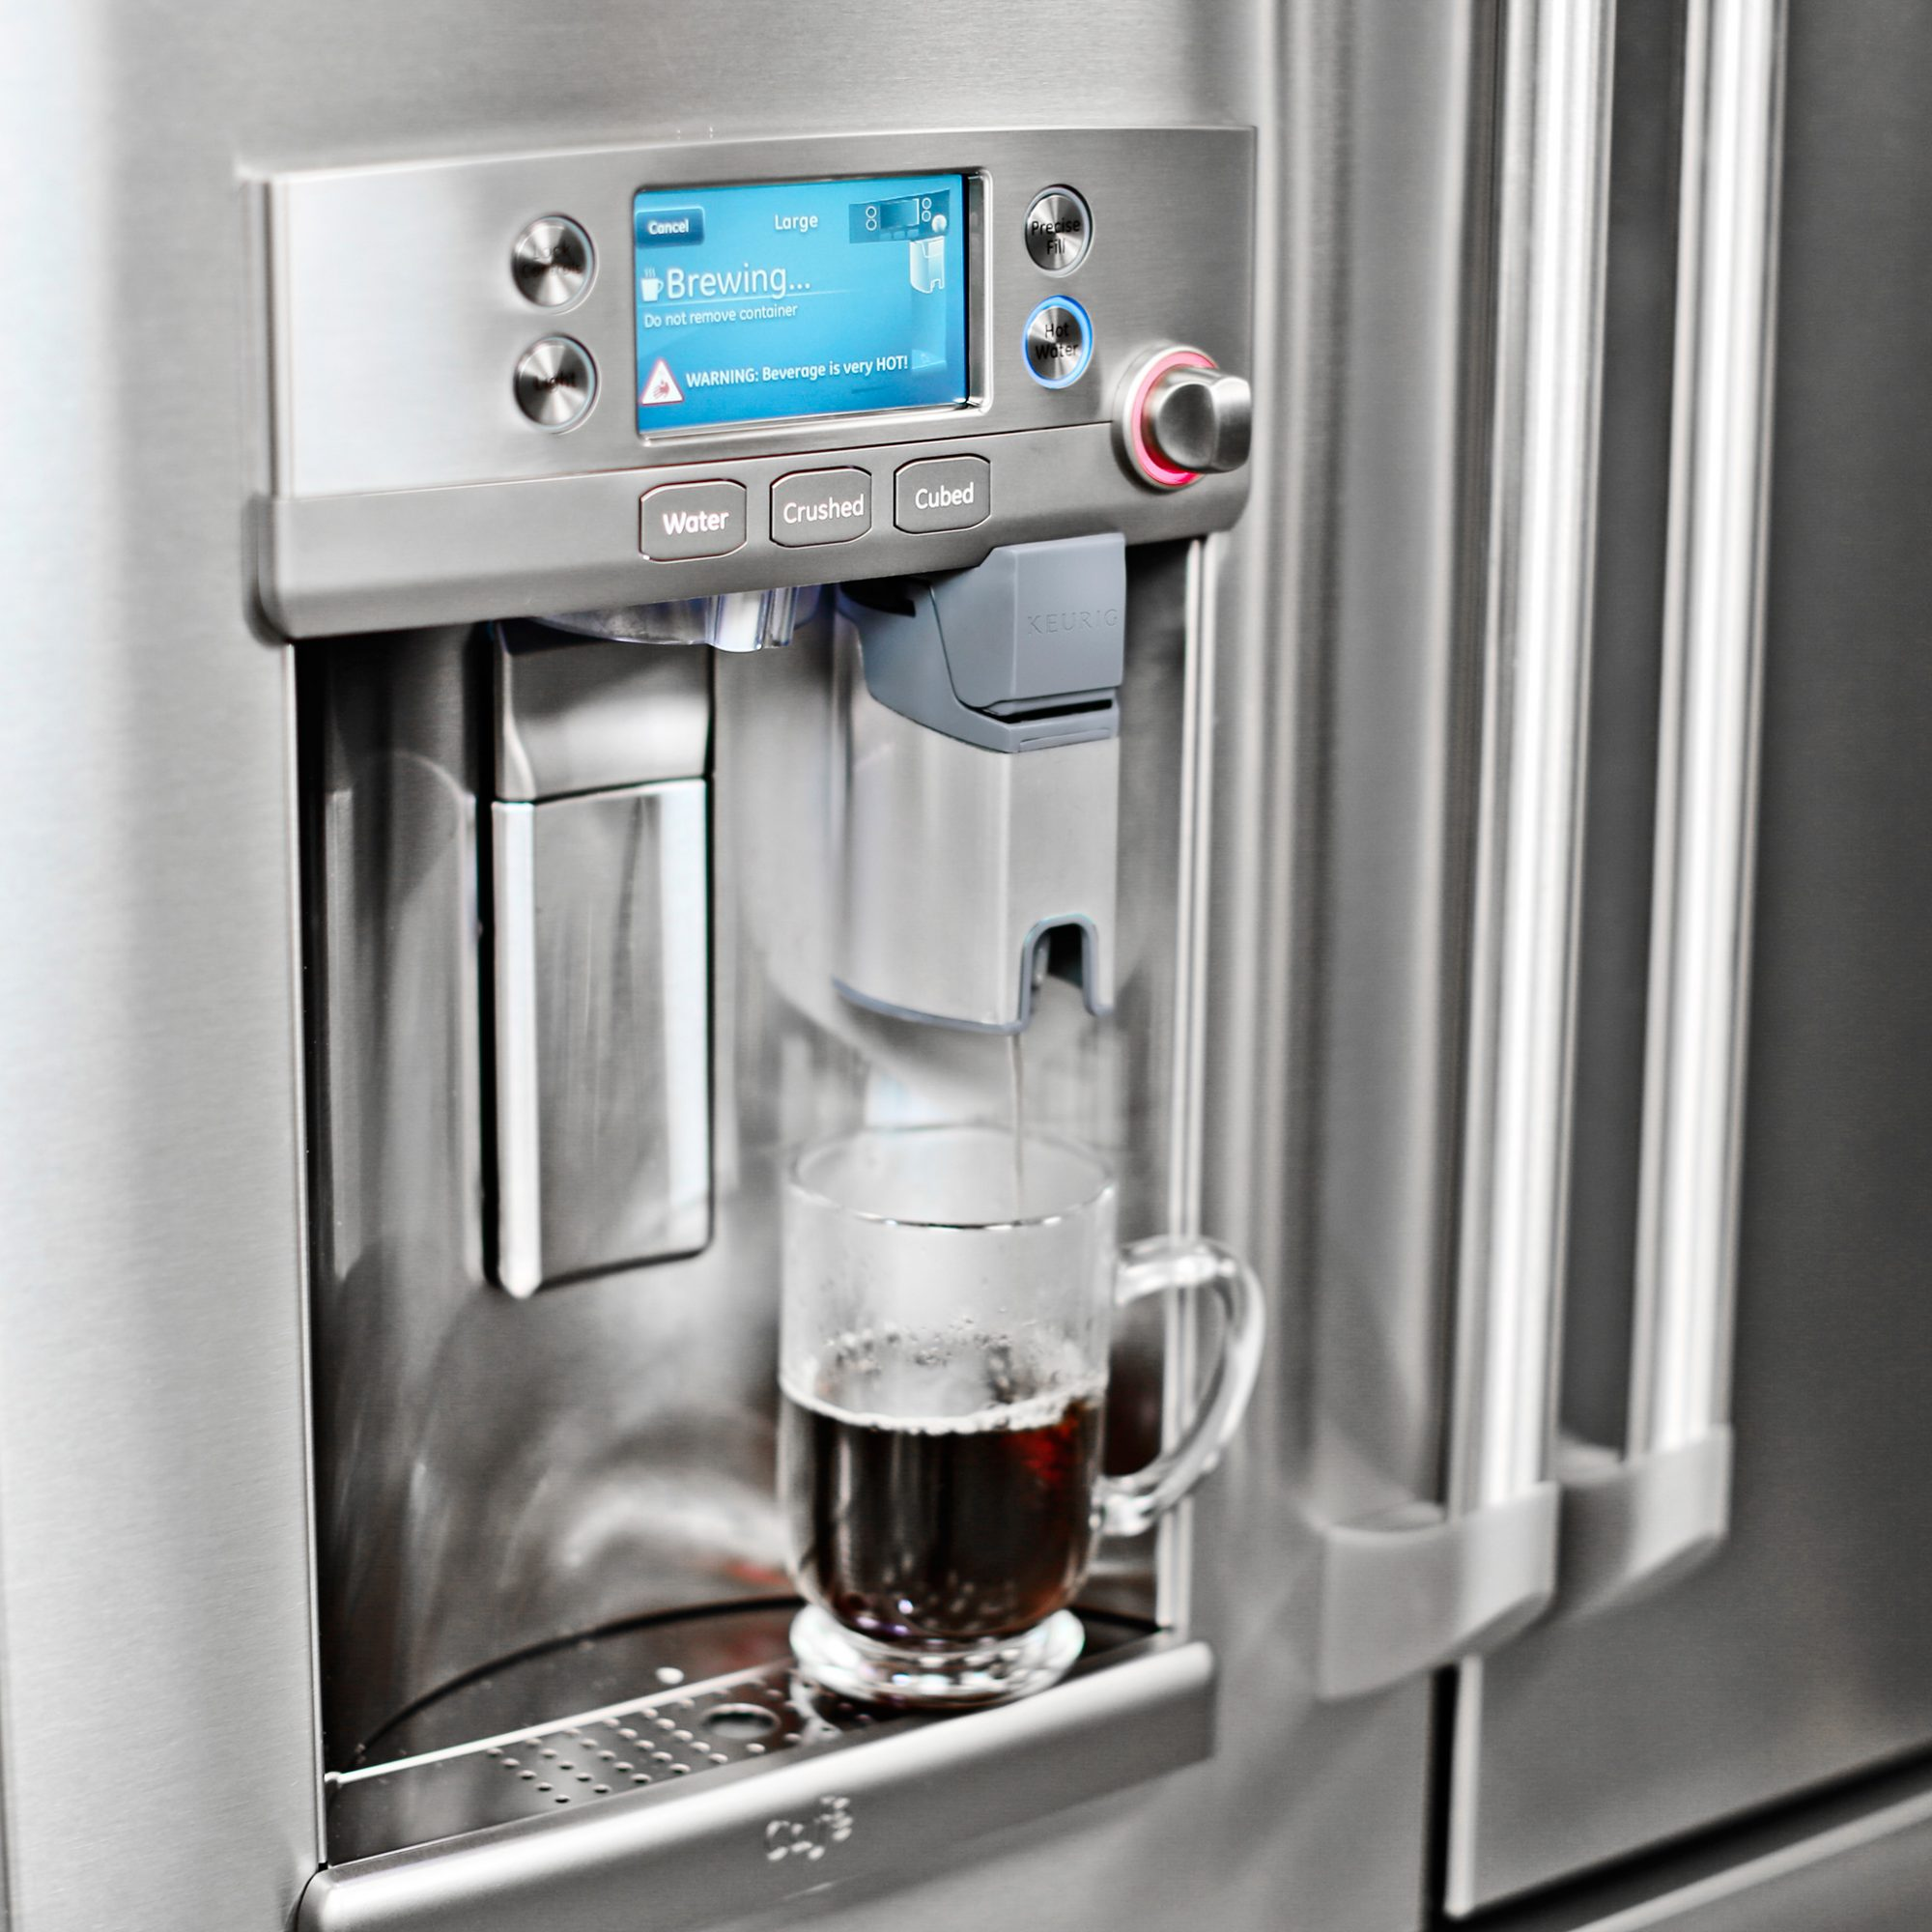 New Refrigerator Has Built In Wi Fi Enabled Keurig Coffee